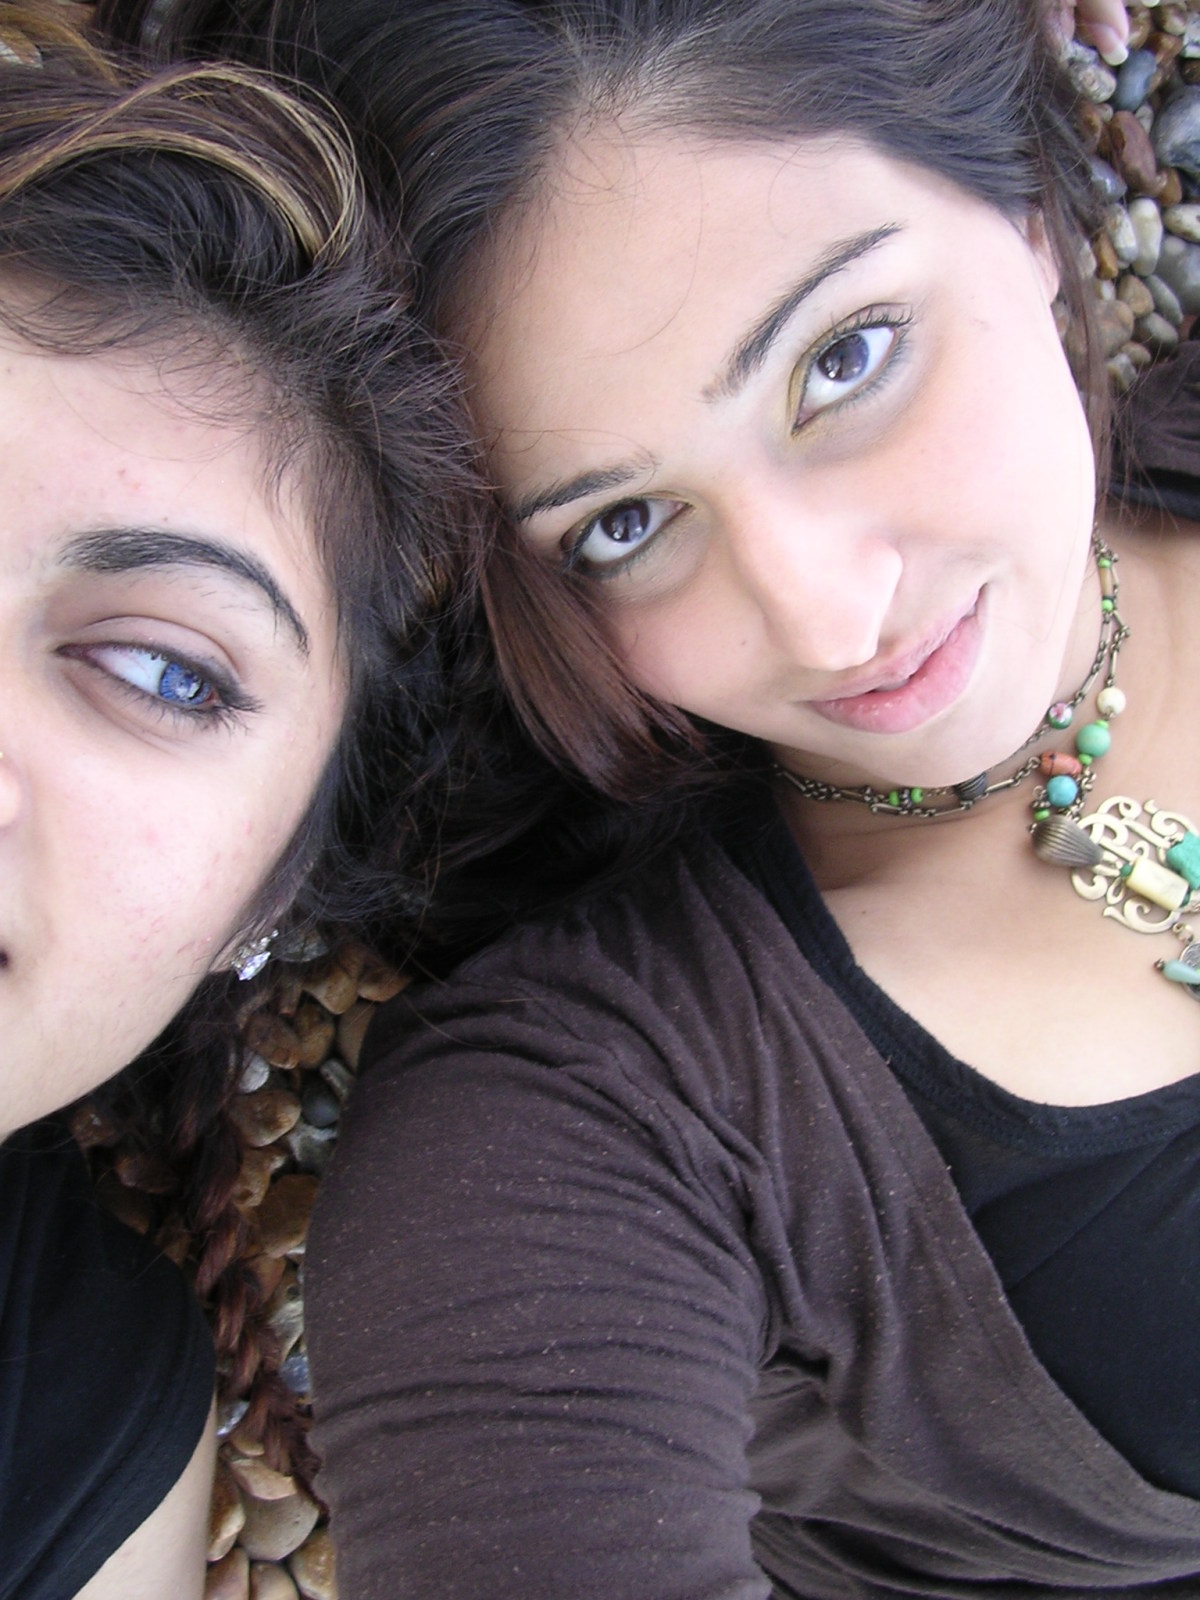 pakistani teen ager girls pictures pornoporn